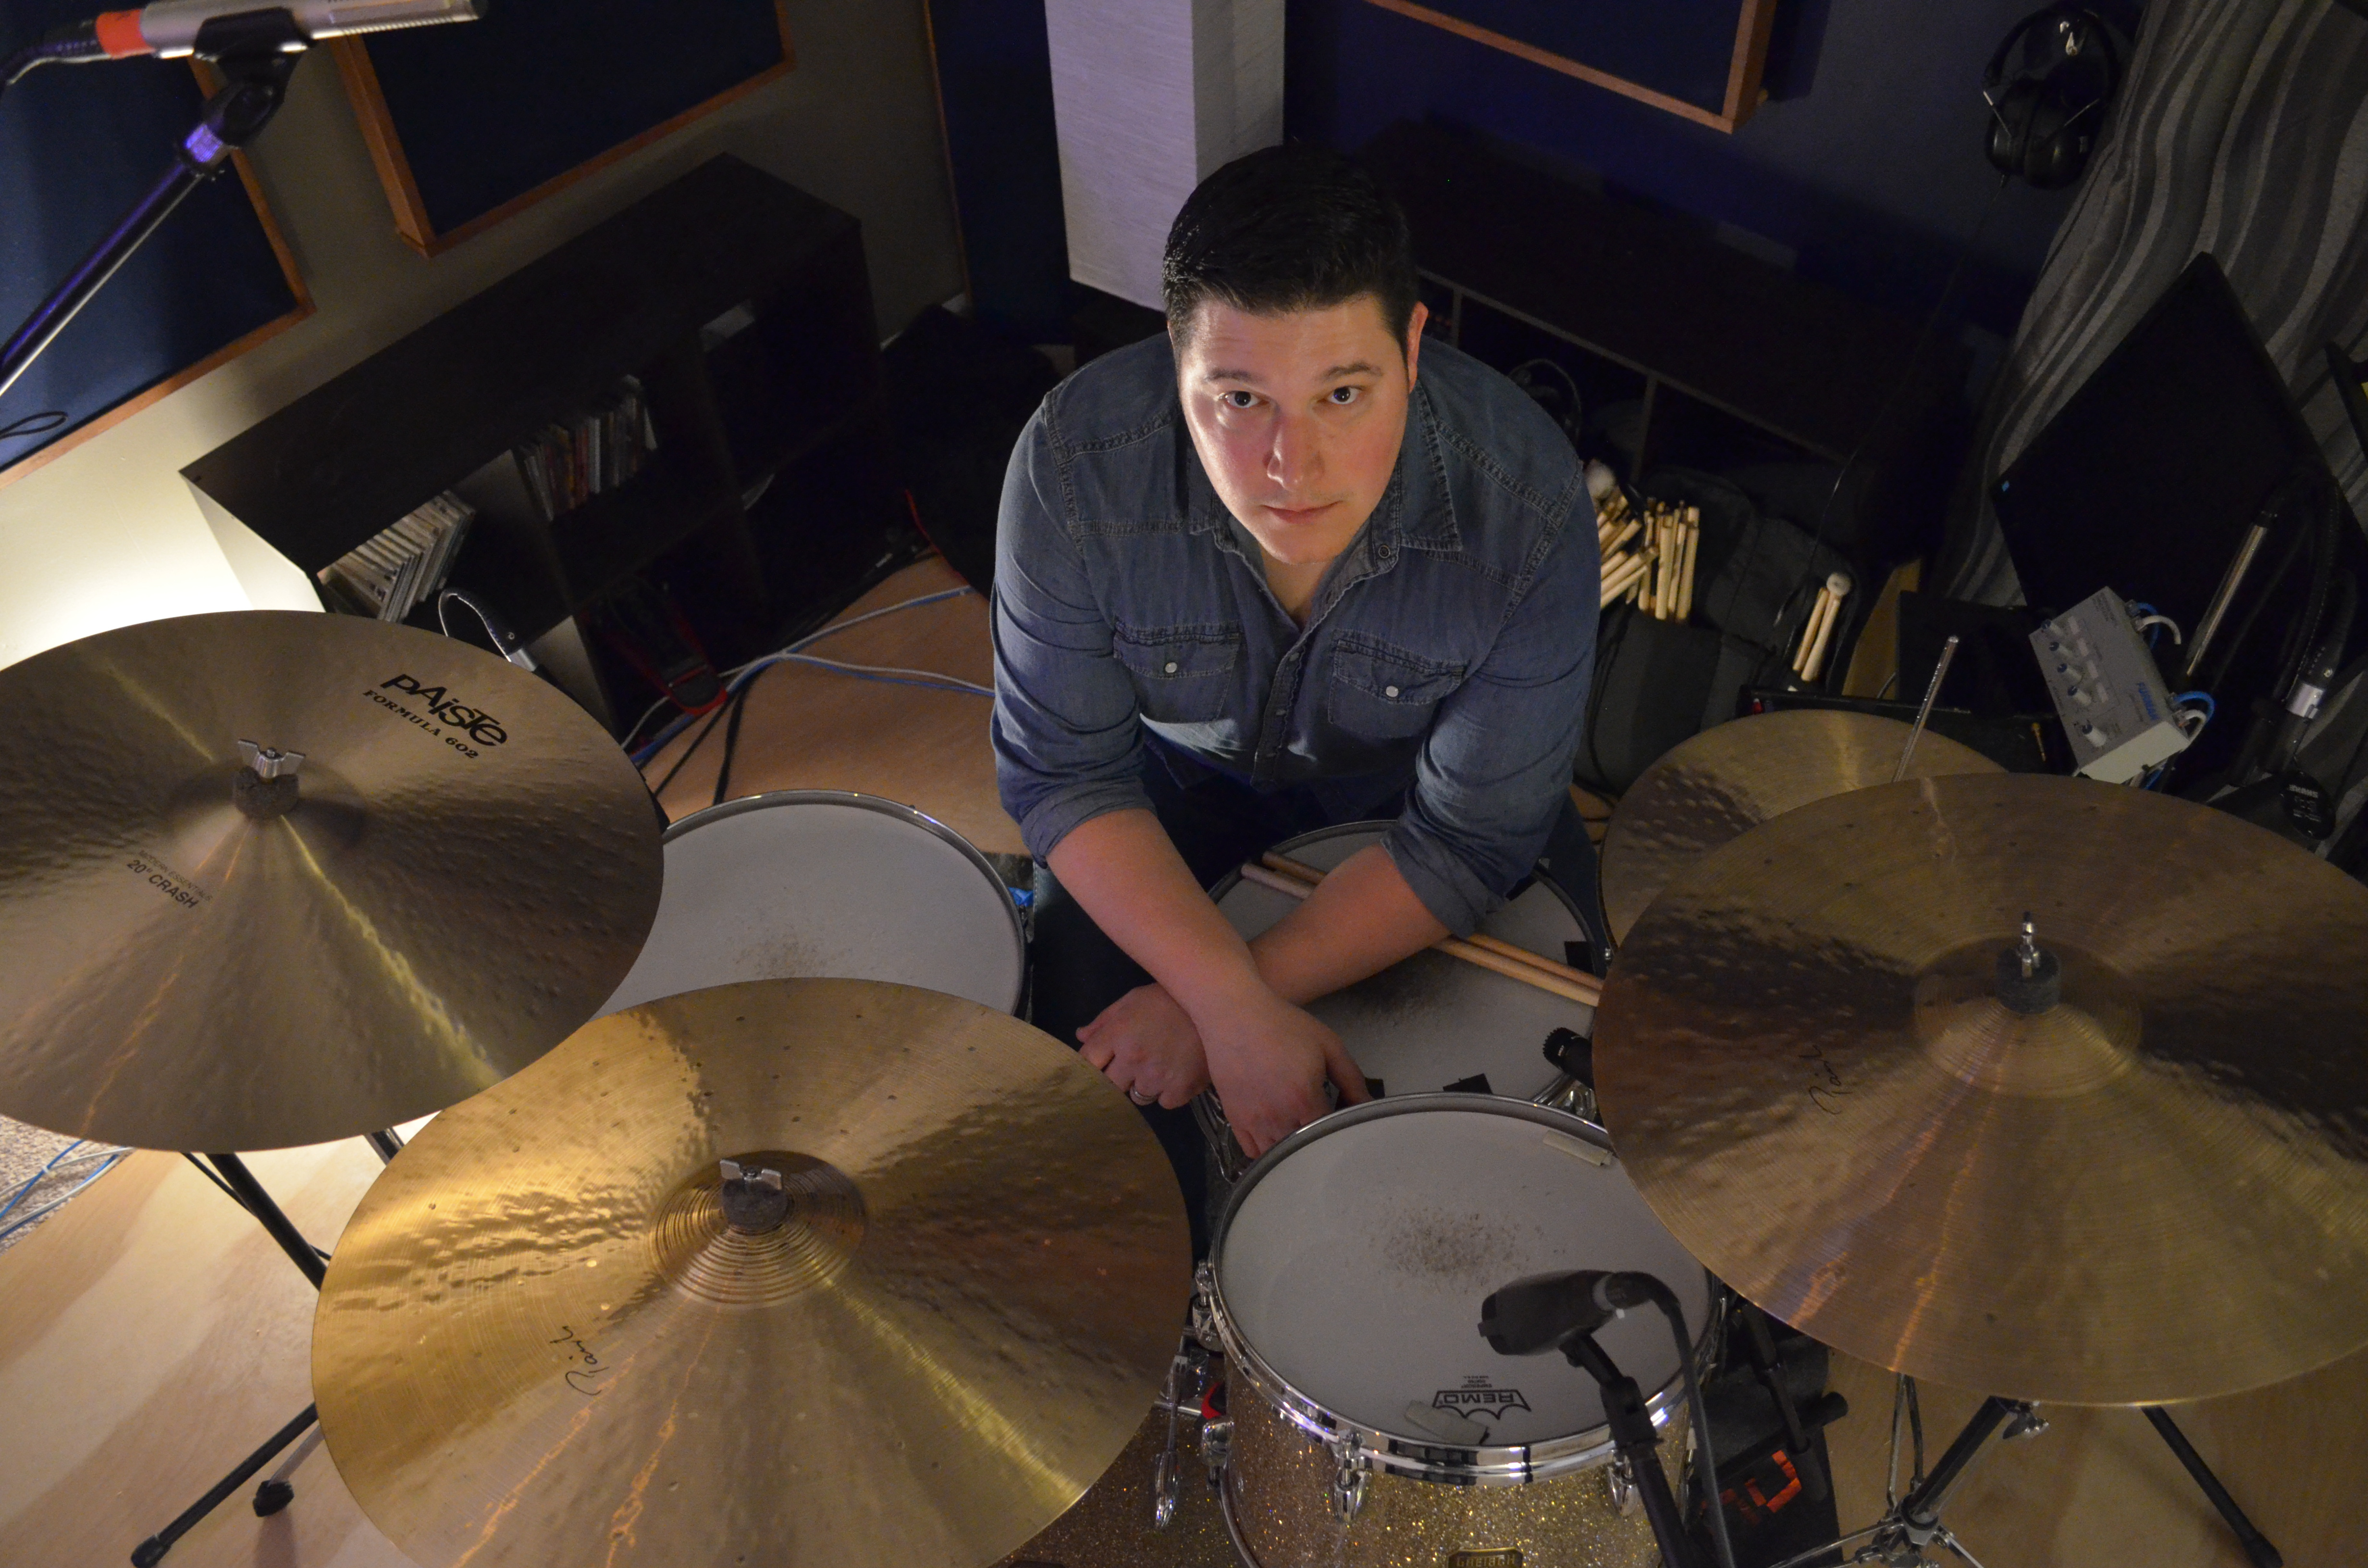 5 MORE Tips For Building A Career In Music: Part 2